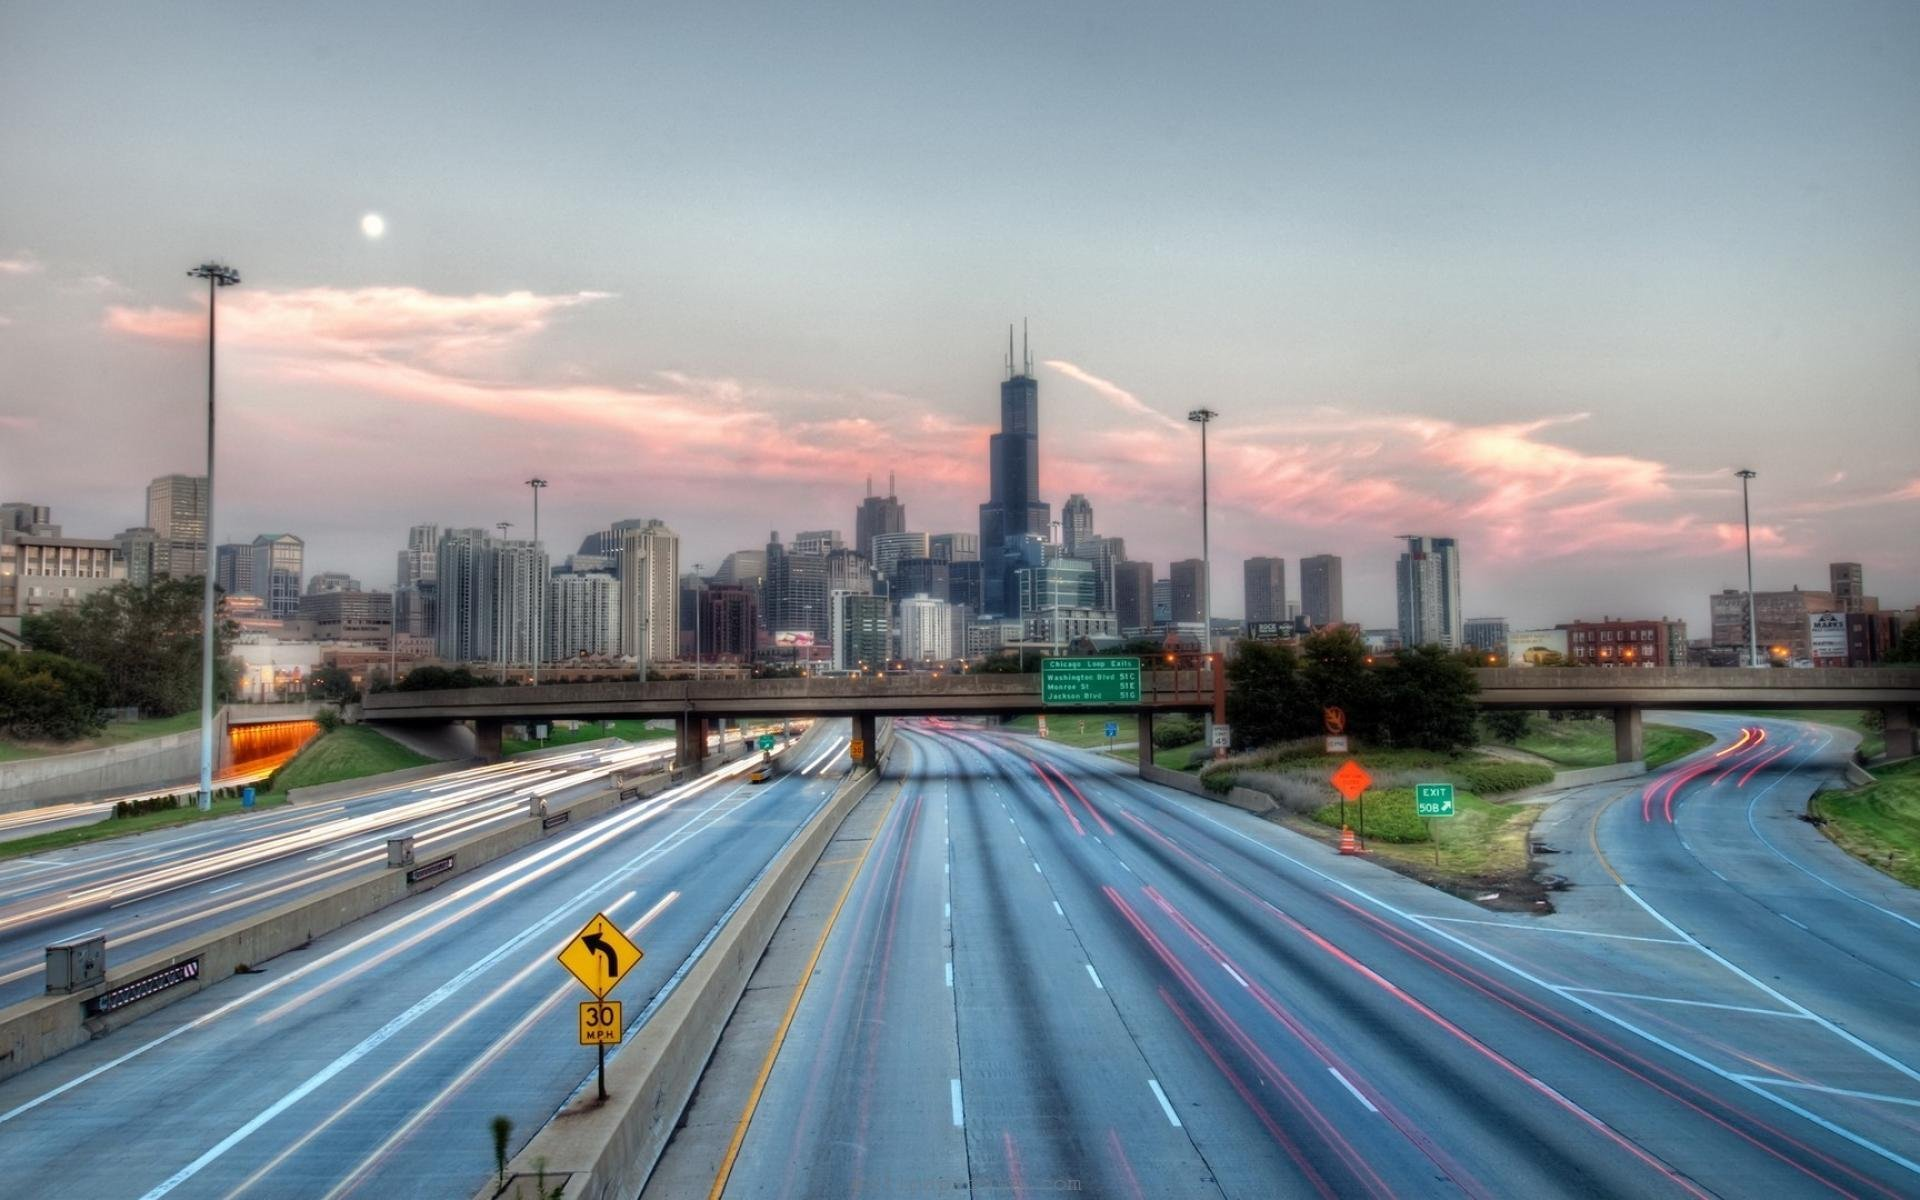 31908238333-cityscapes-roads-photography-highway-usa-chicago-wallpapers.jpg